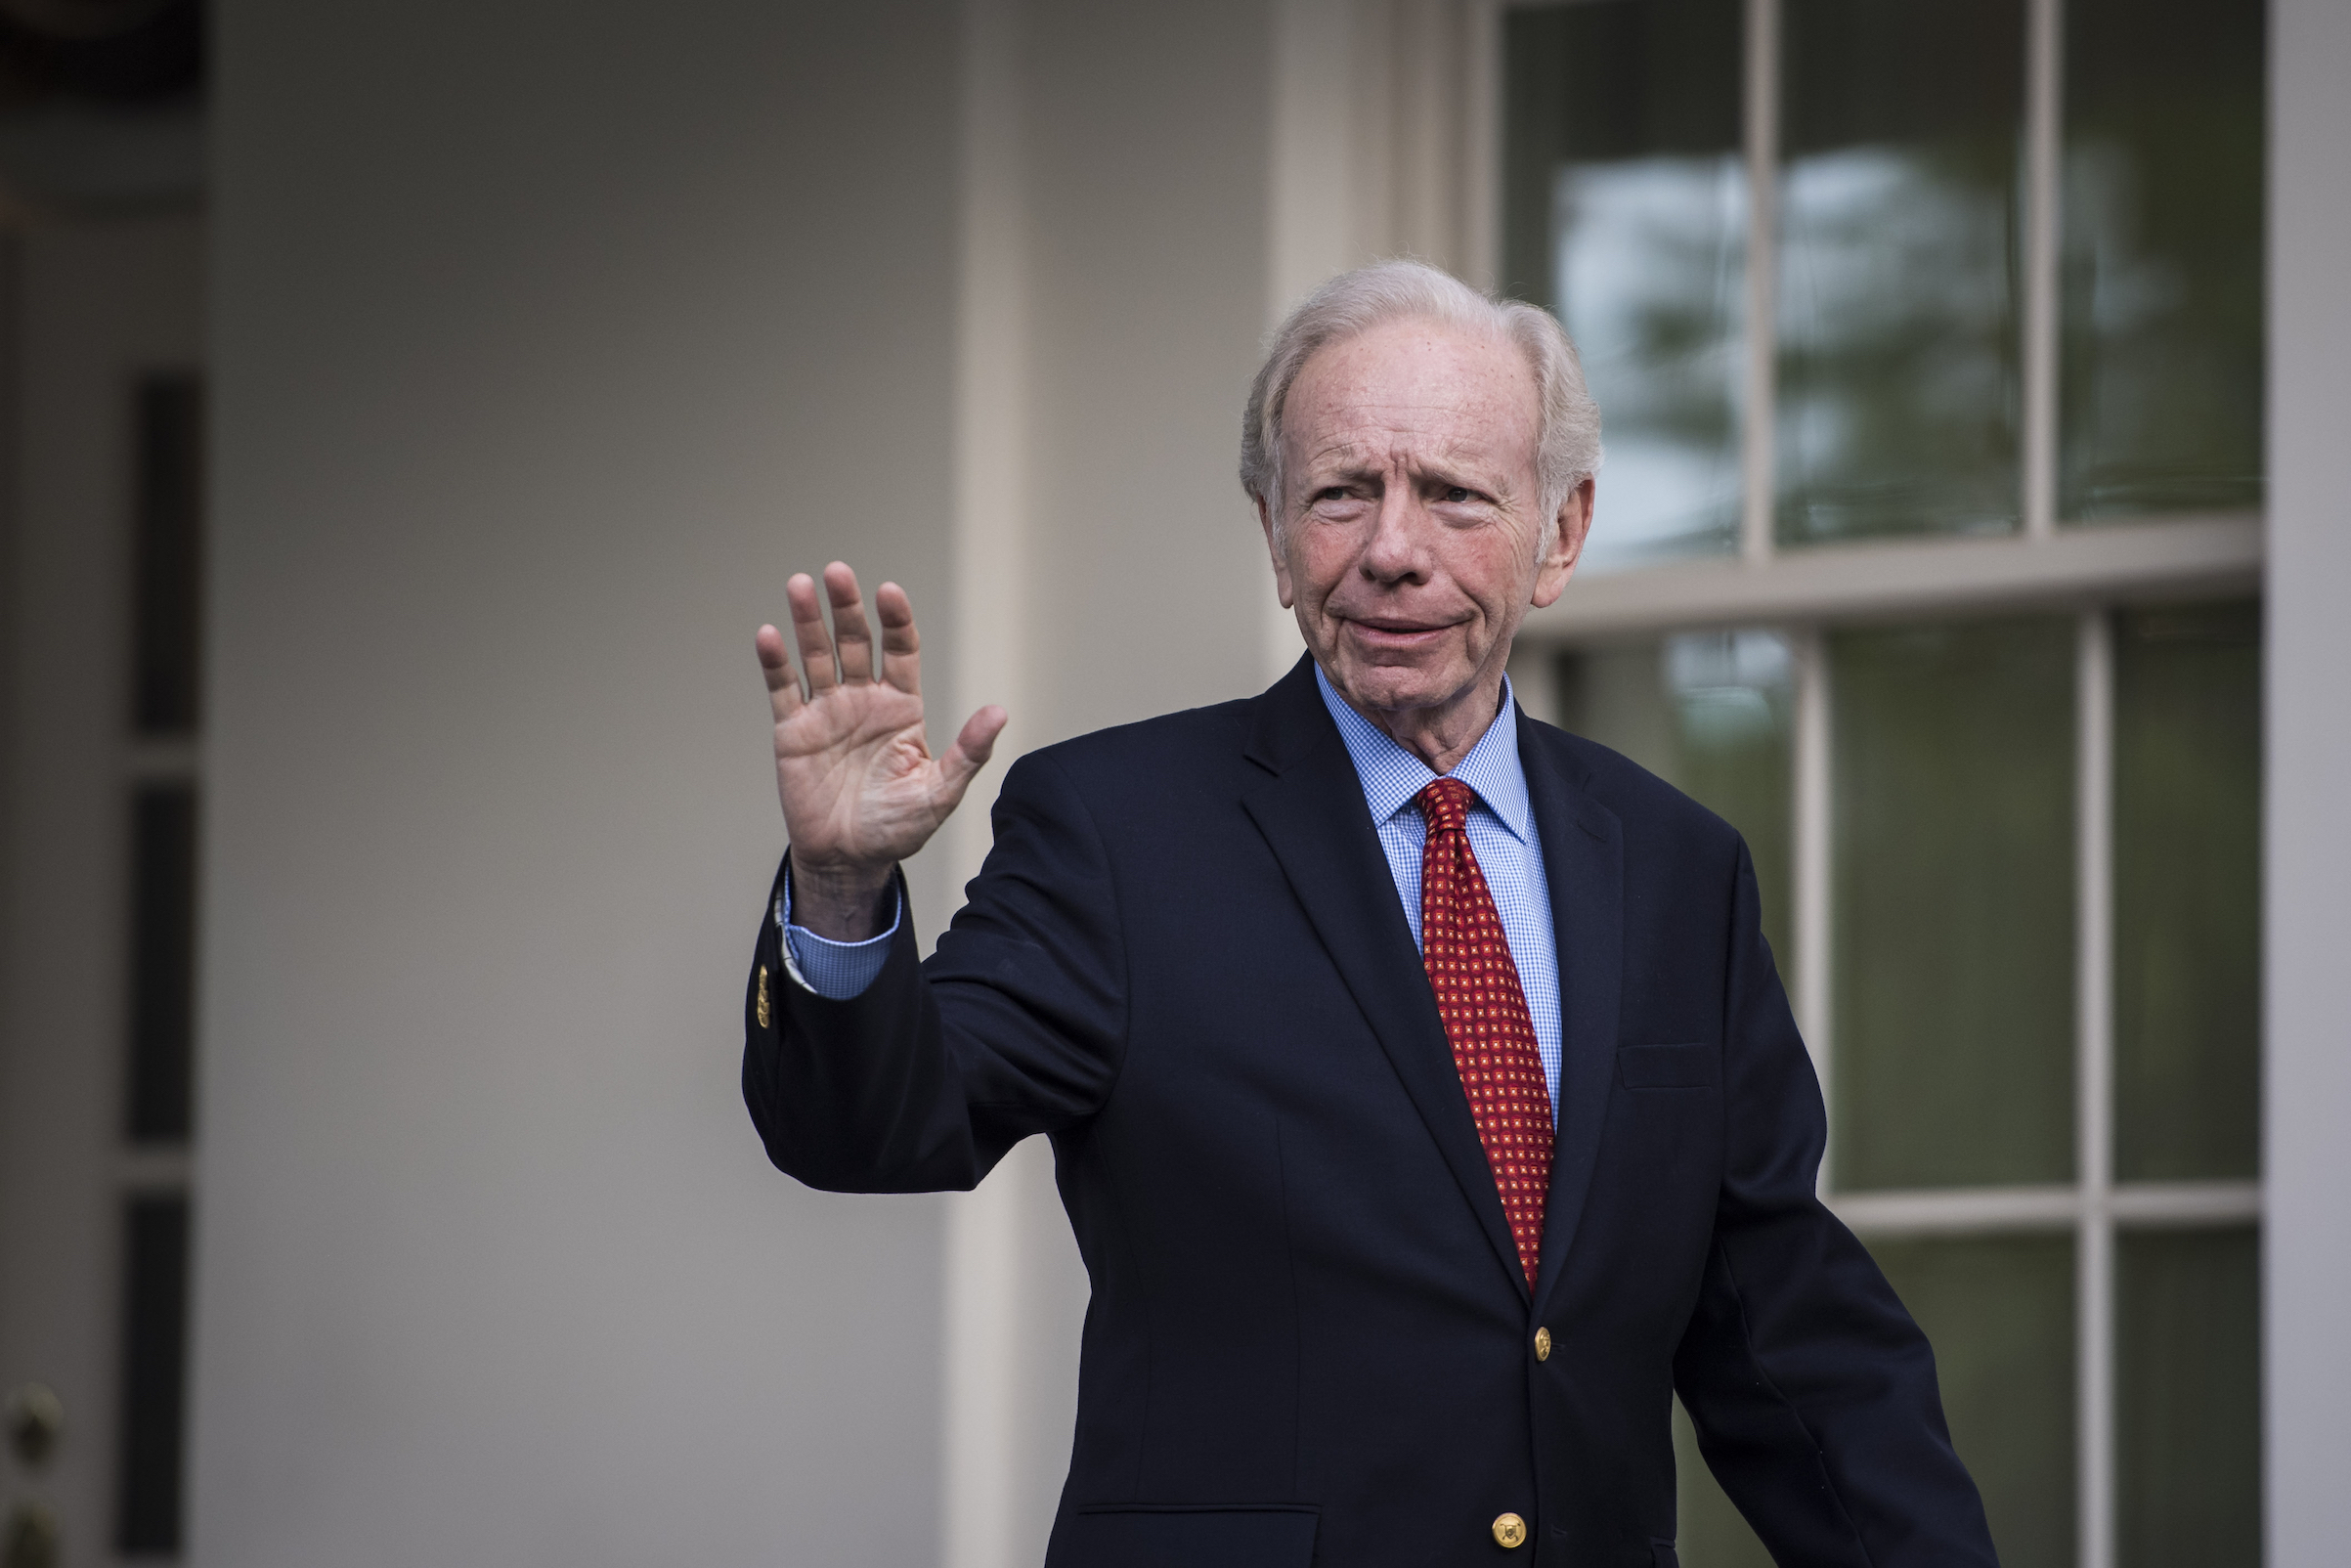 Former Connecticut Sen. Joseph Lieberman walks out of the West Wing after a meeting at the White House in Washington, D.C., on May 17, 2017.